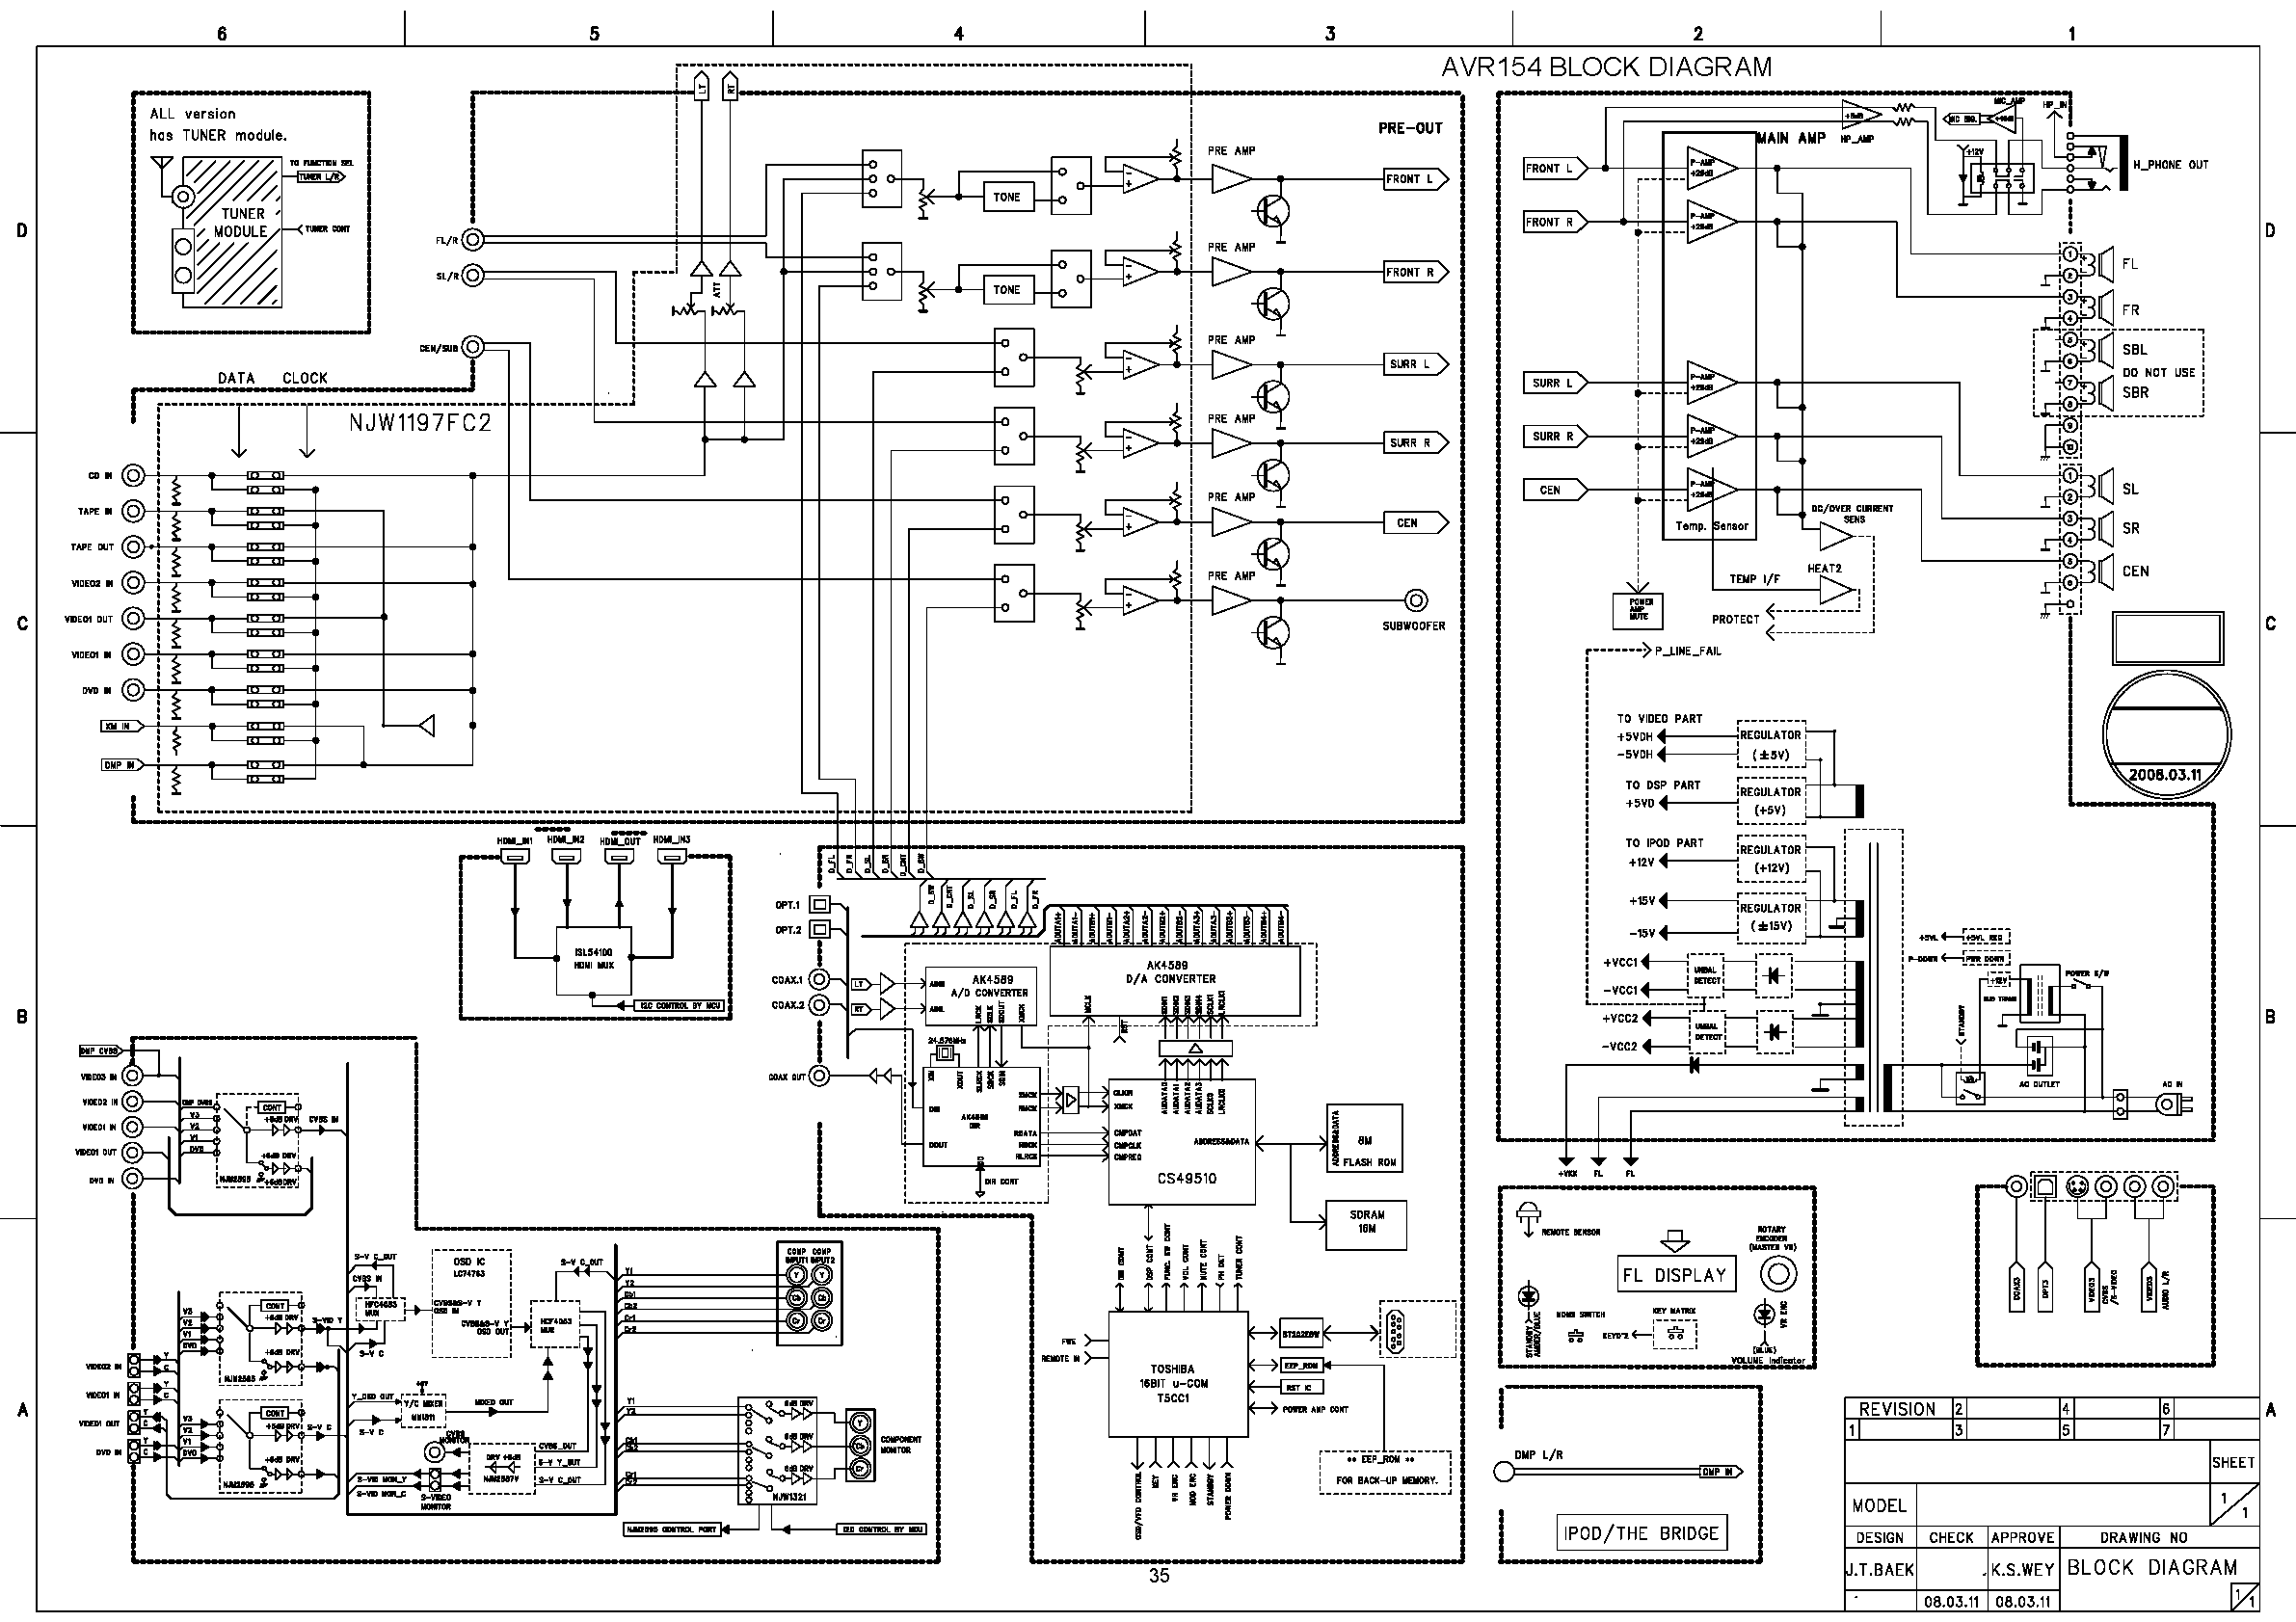 2007 isuzu nqr wiring diagram html imageresizertool com